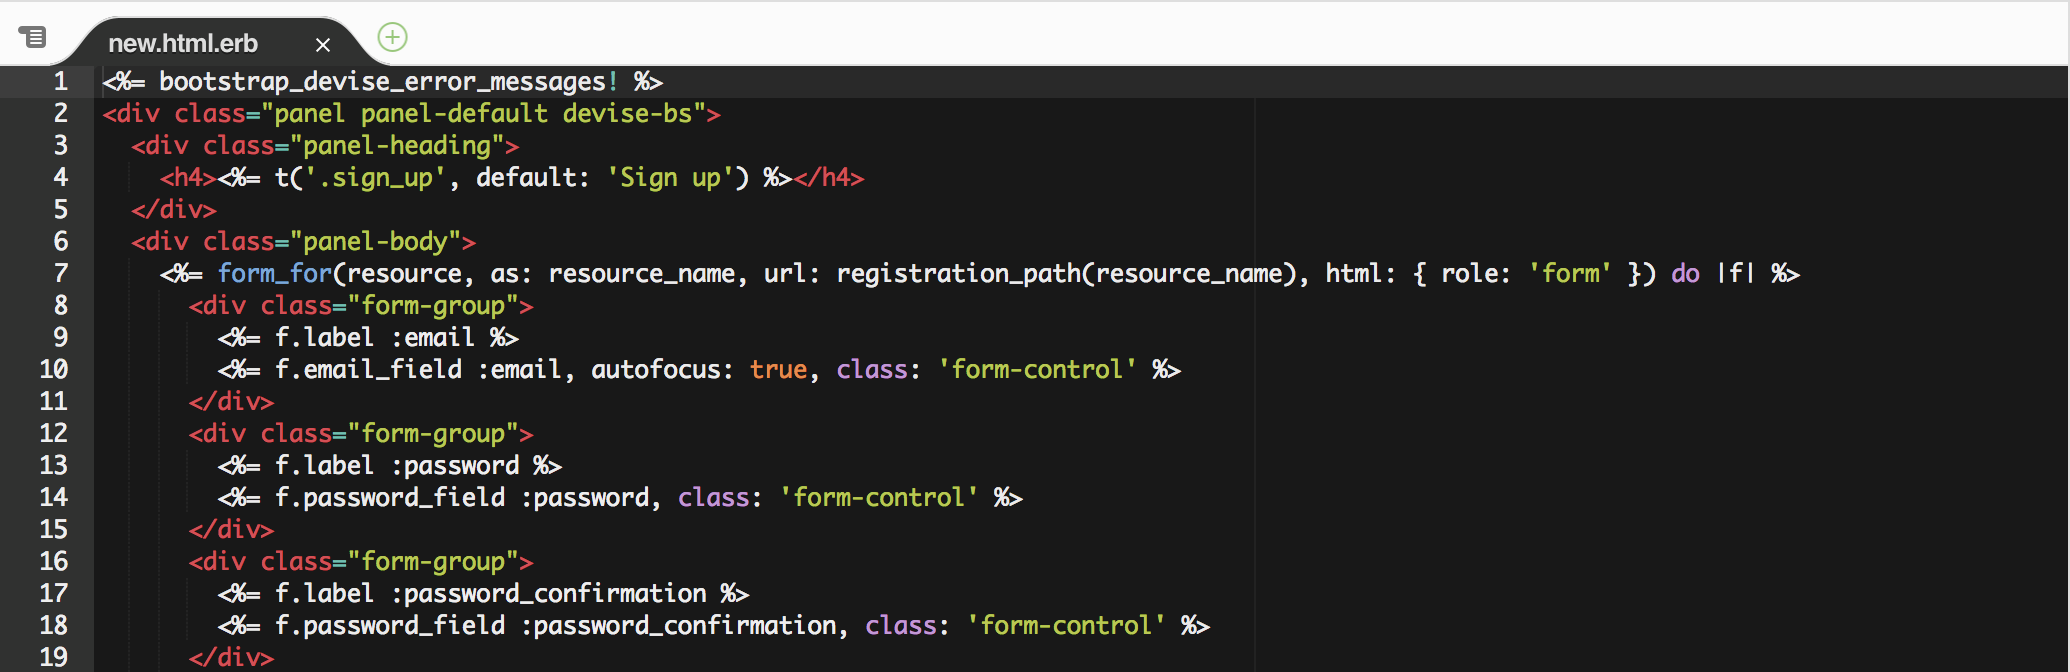 HTML with embedded Ruby.